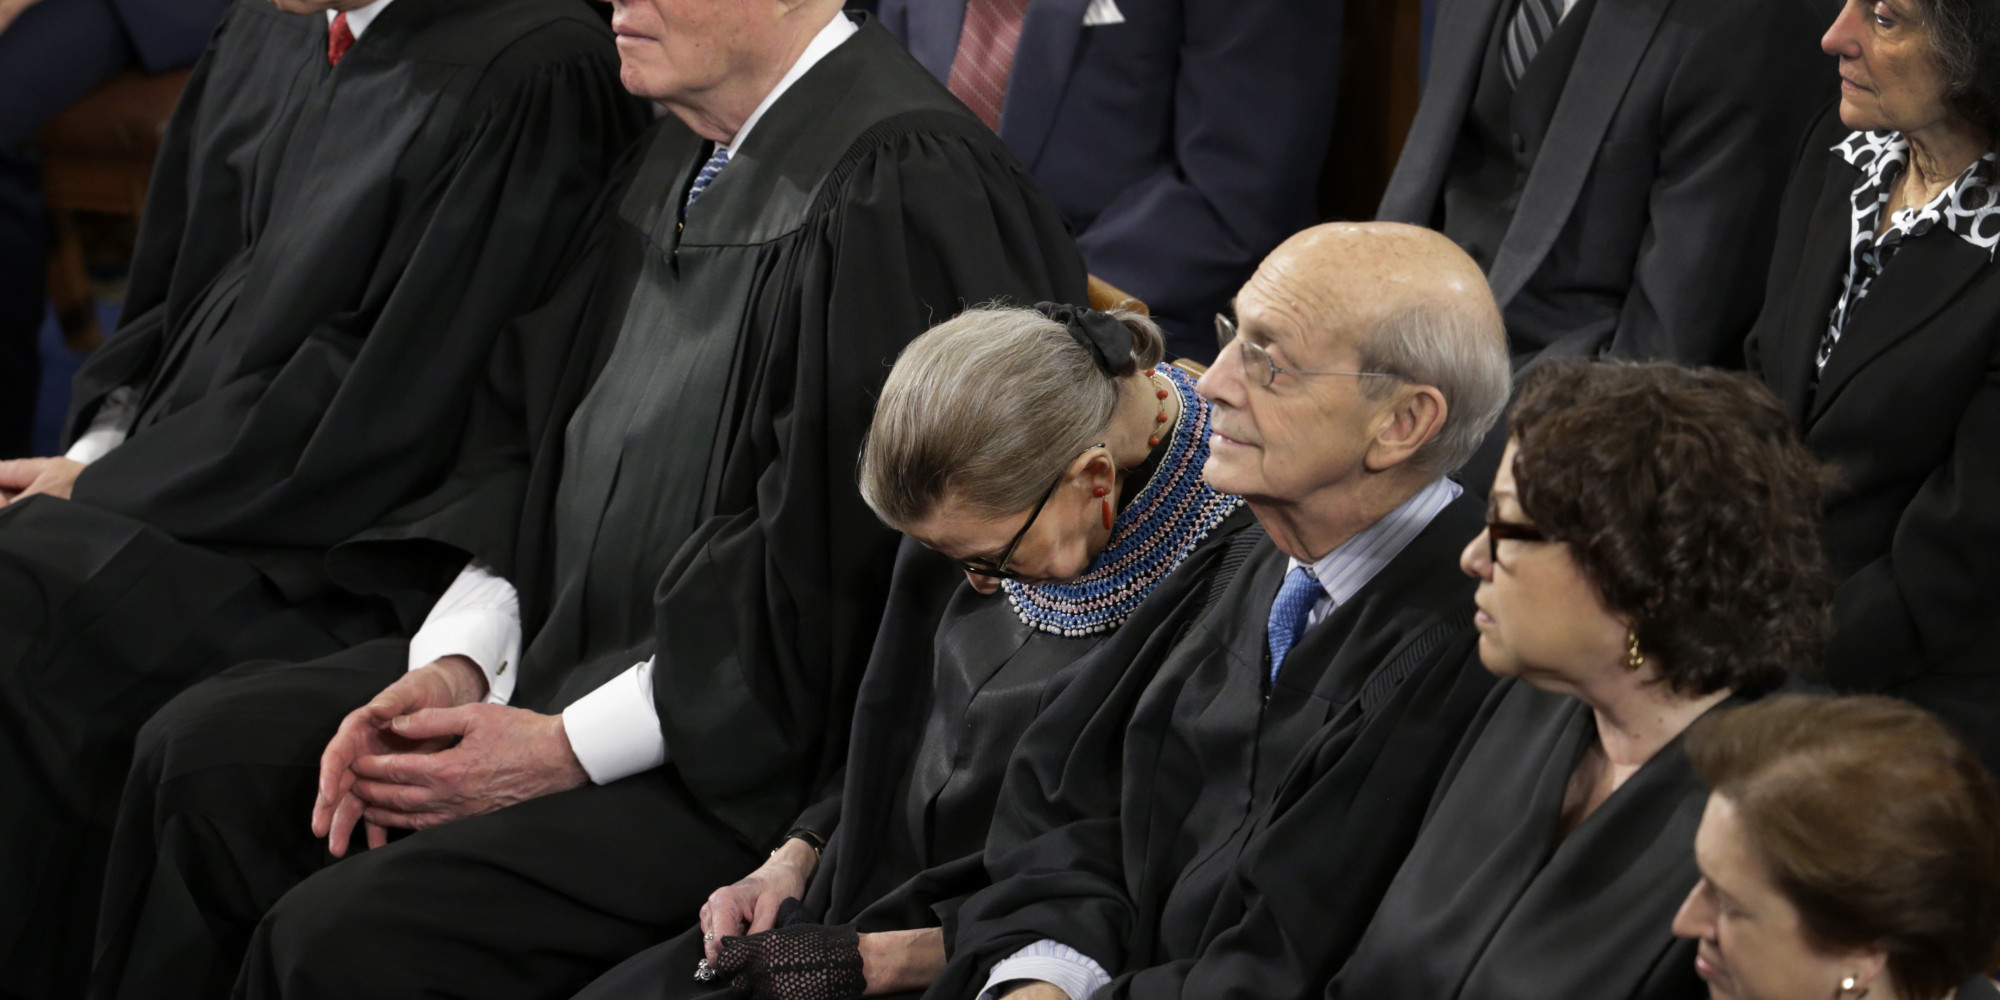 "In this photo taken Jan. 20, 2015 members of the Supreme Court, including Justice Ruth Bader Ginsburg, center, rests during President Barack Obama's State of the Union address on Capitol Hill in Washington. Ginsburg has a confession: She ""wasn't 100 percent sober"" when she fell asleep at the president's State of the Union address last month. Ginsburg told an audience Thursday that she drank some wine at dinner before attending the speech, where cameras repeatedly caught her nodding off. The 81-year-old justice says she had dined with Justice Anthony Kennedy and couldn't resist the California wine he brought.  (AP Photo/Pablo Martinez Monsivais)"